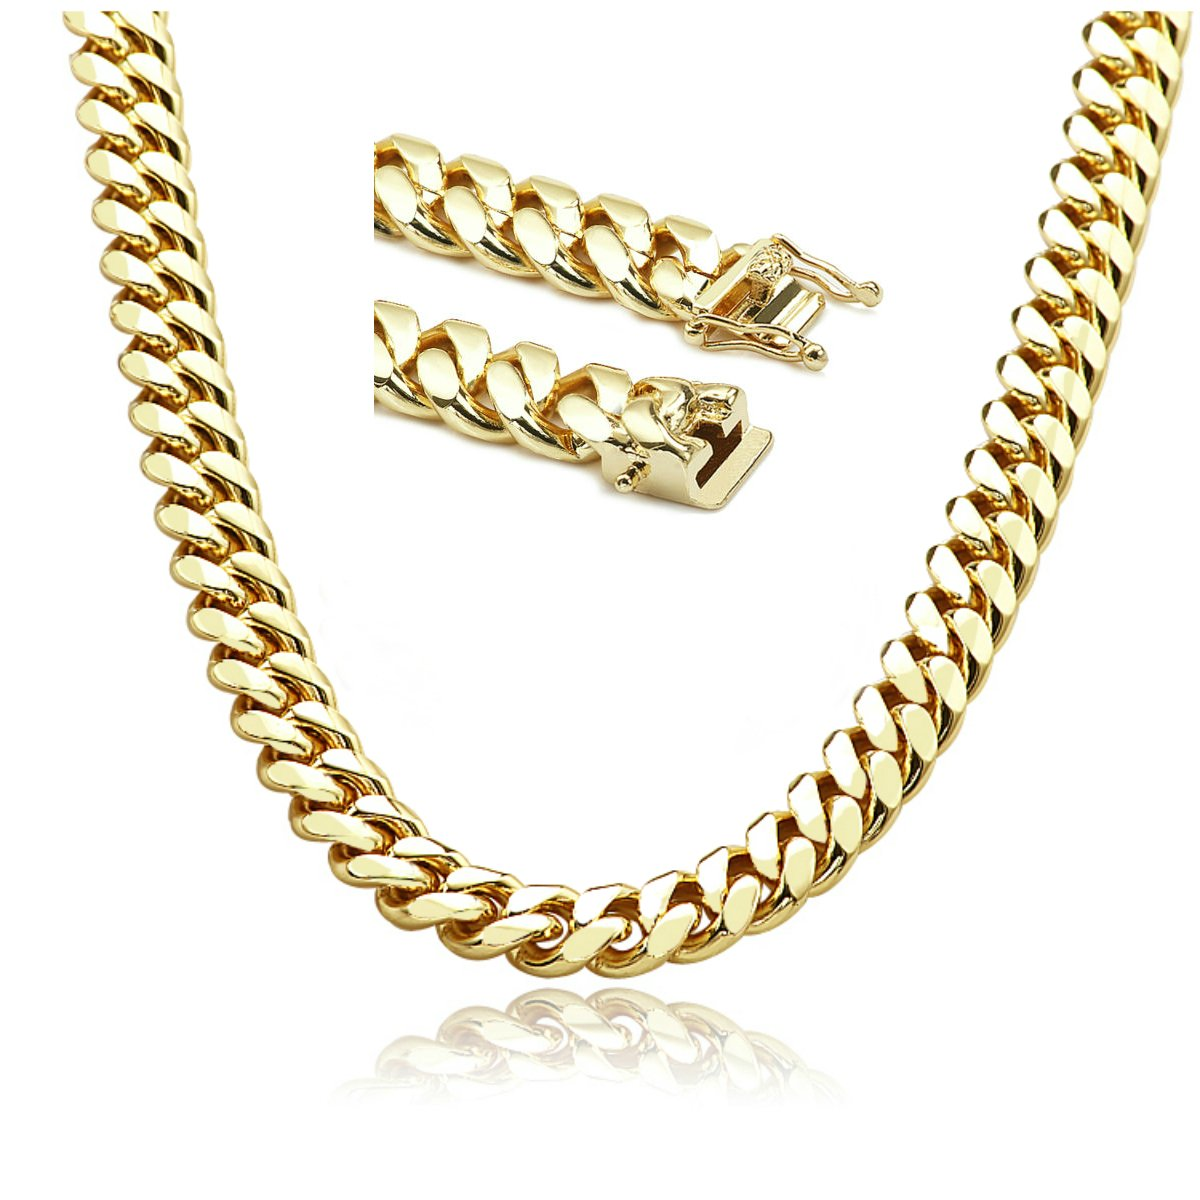 Gold chain necklace 14MM 24K Diamond cut Smooth Cuban Link with a. USA made!(24)